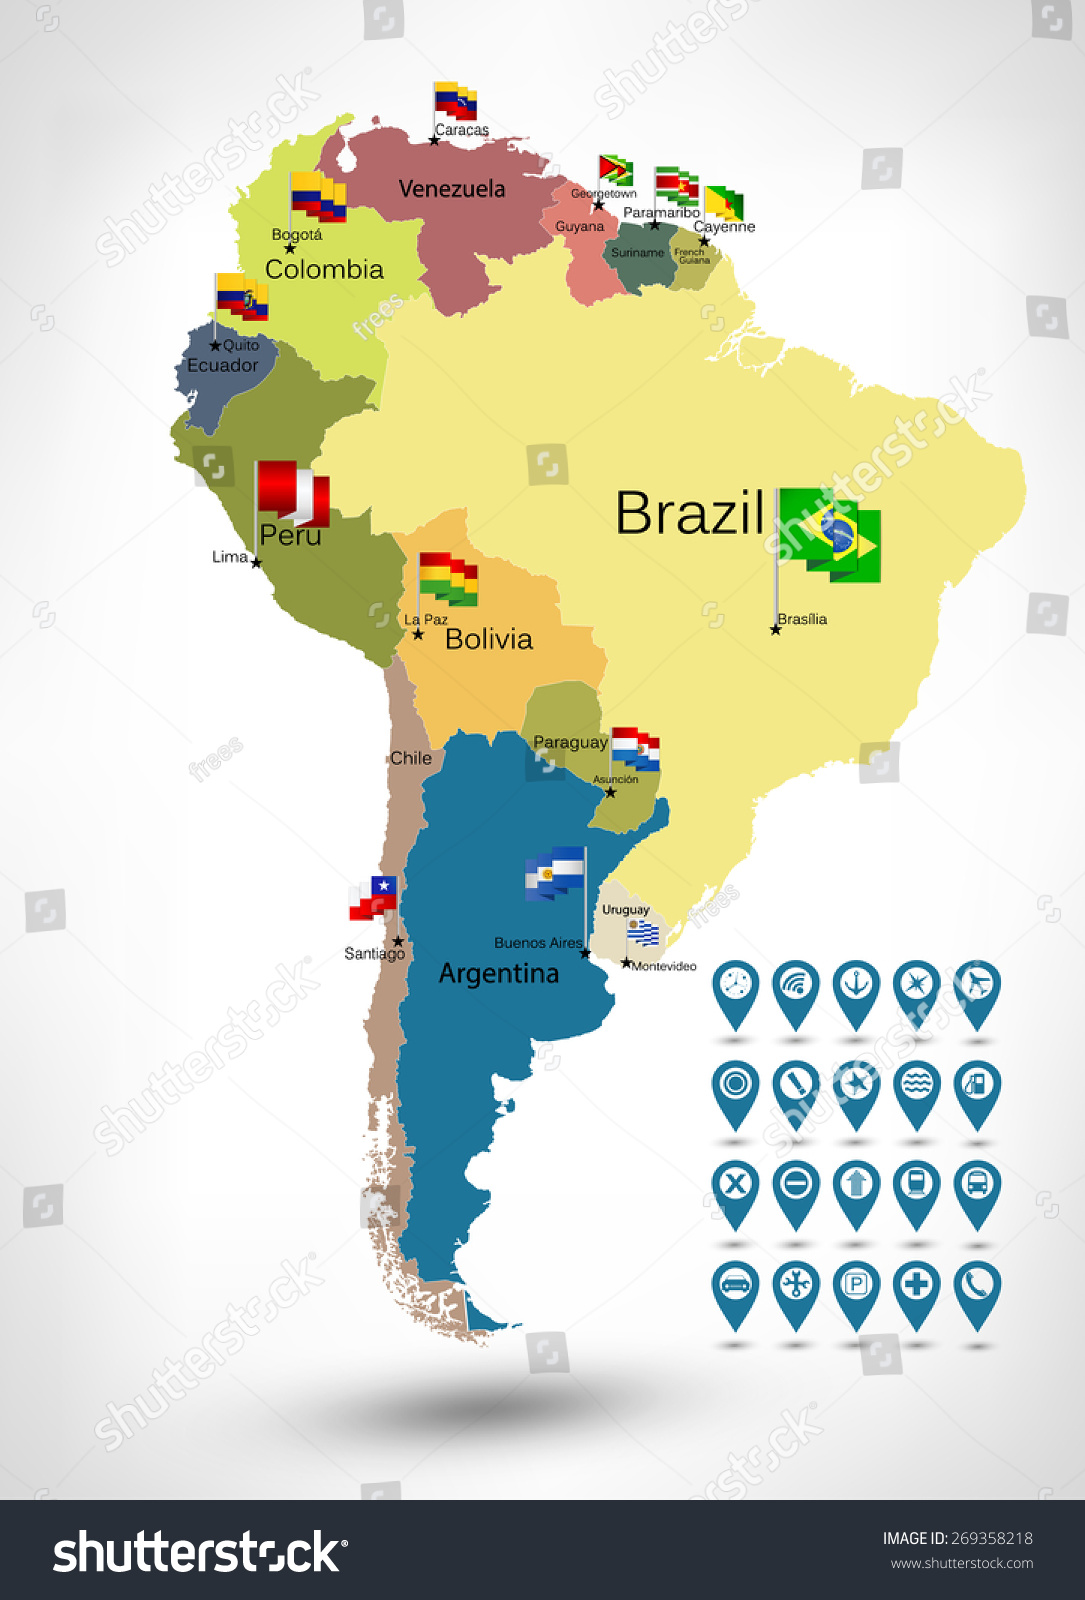 South America Detailed Continent Political Map Stock Vector - Argentina map continent